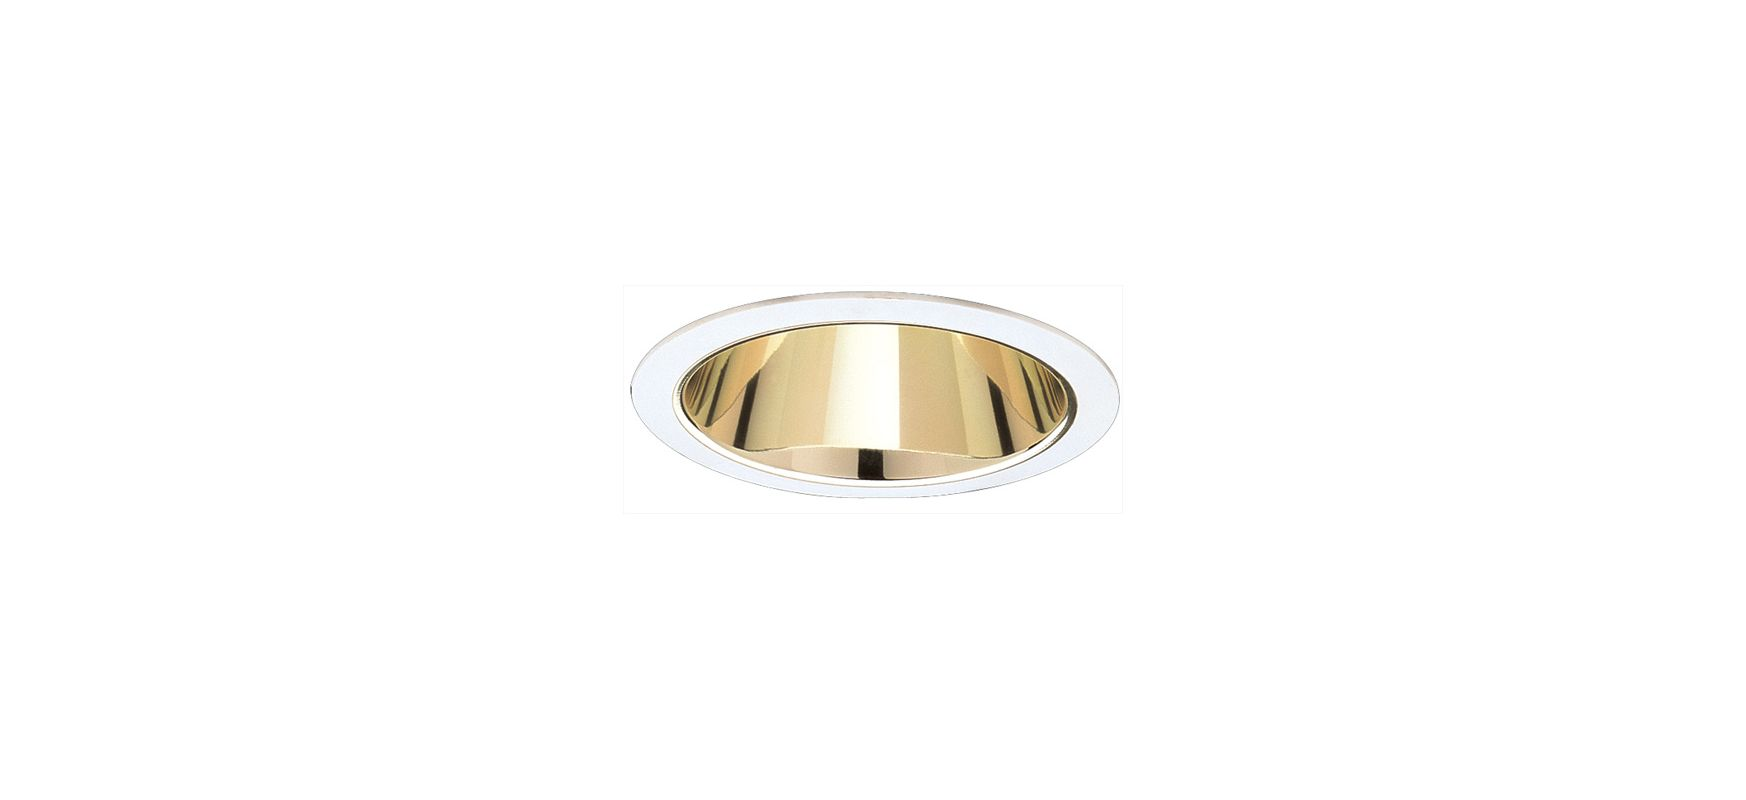 "Elco EL716 7"" CFL Reflector Trim for Vertical Architectural Housings"